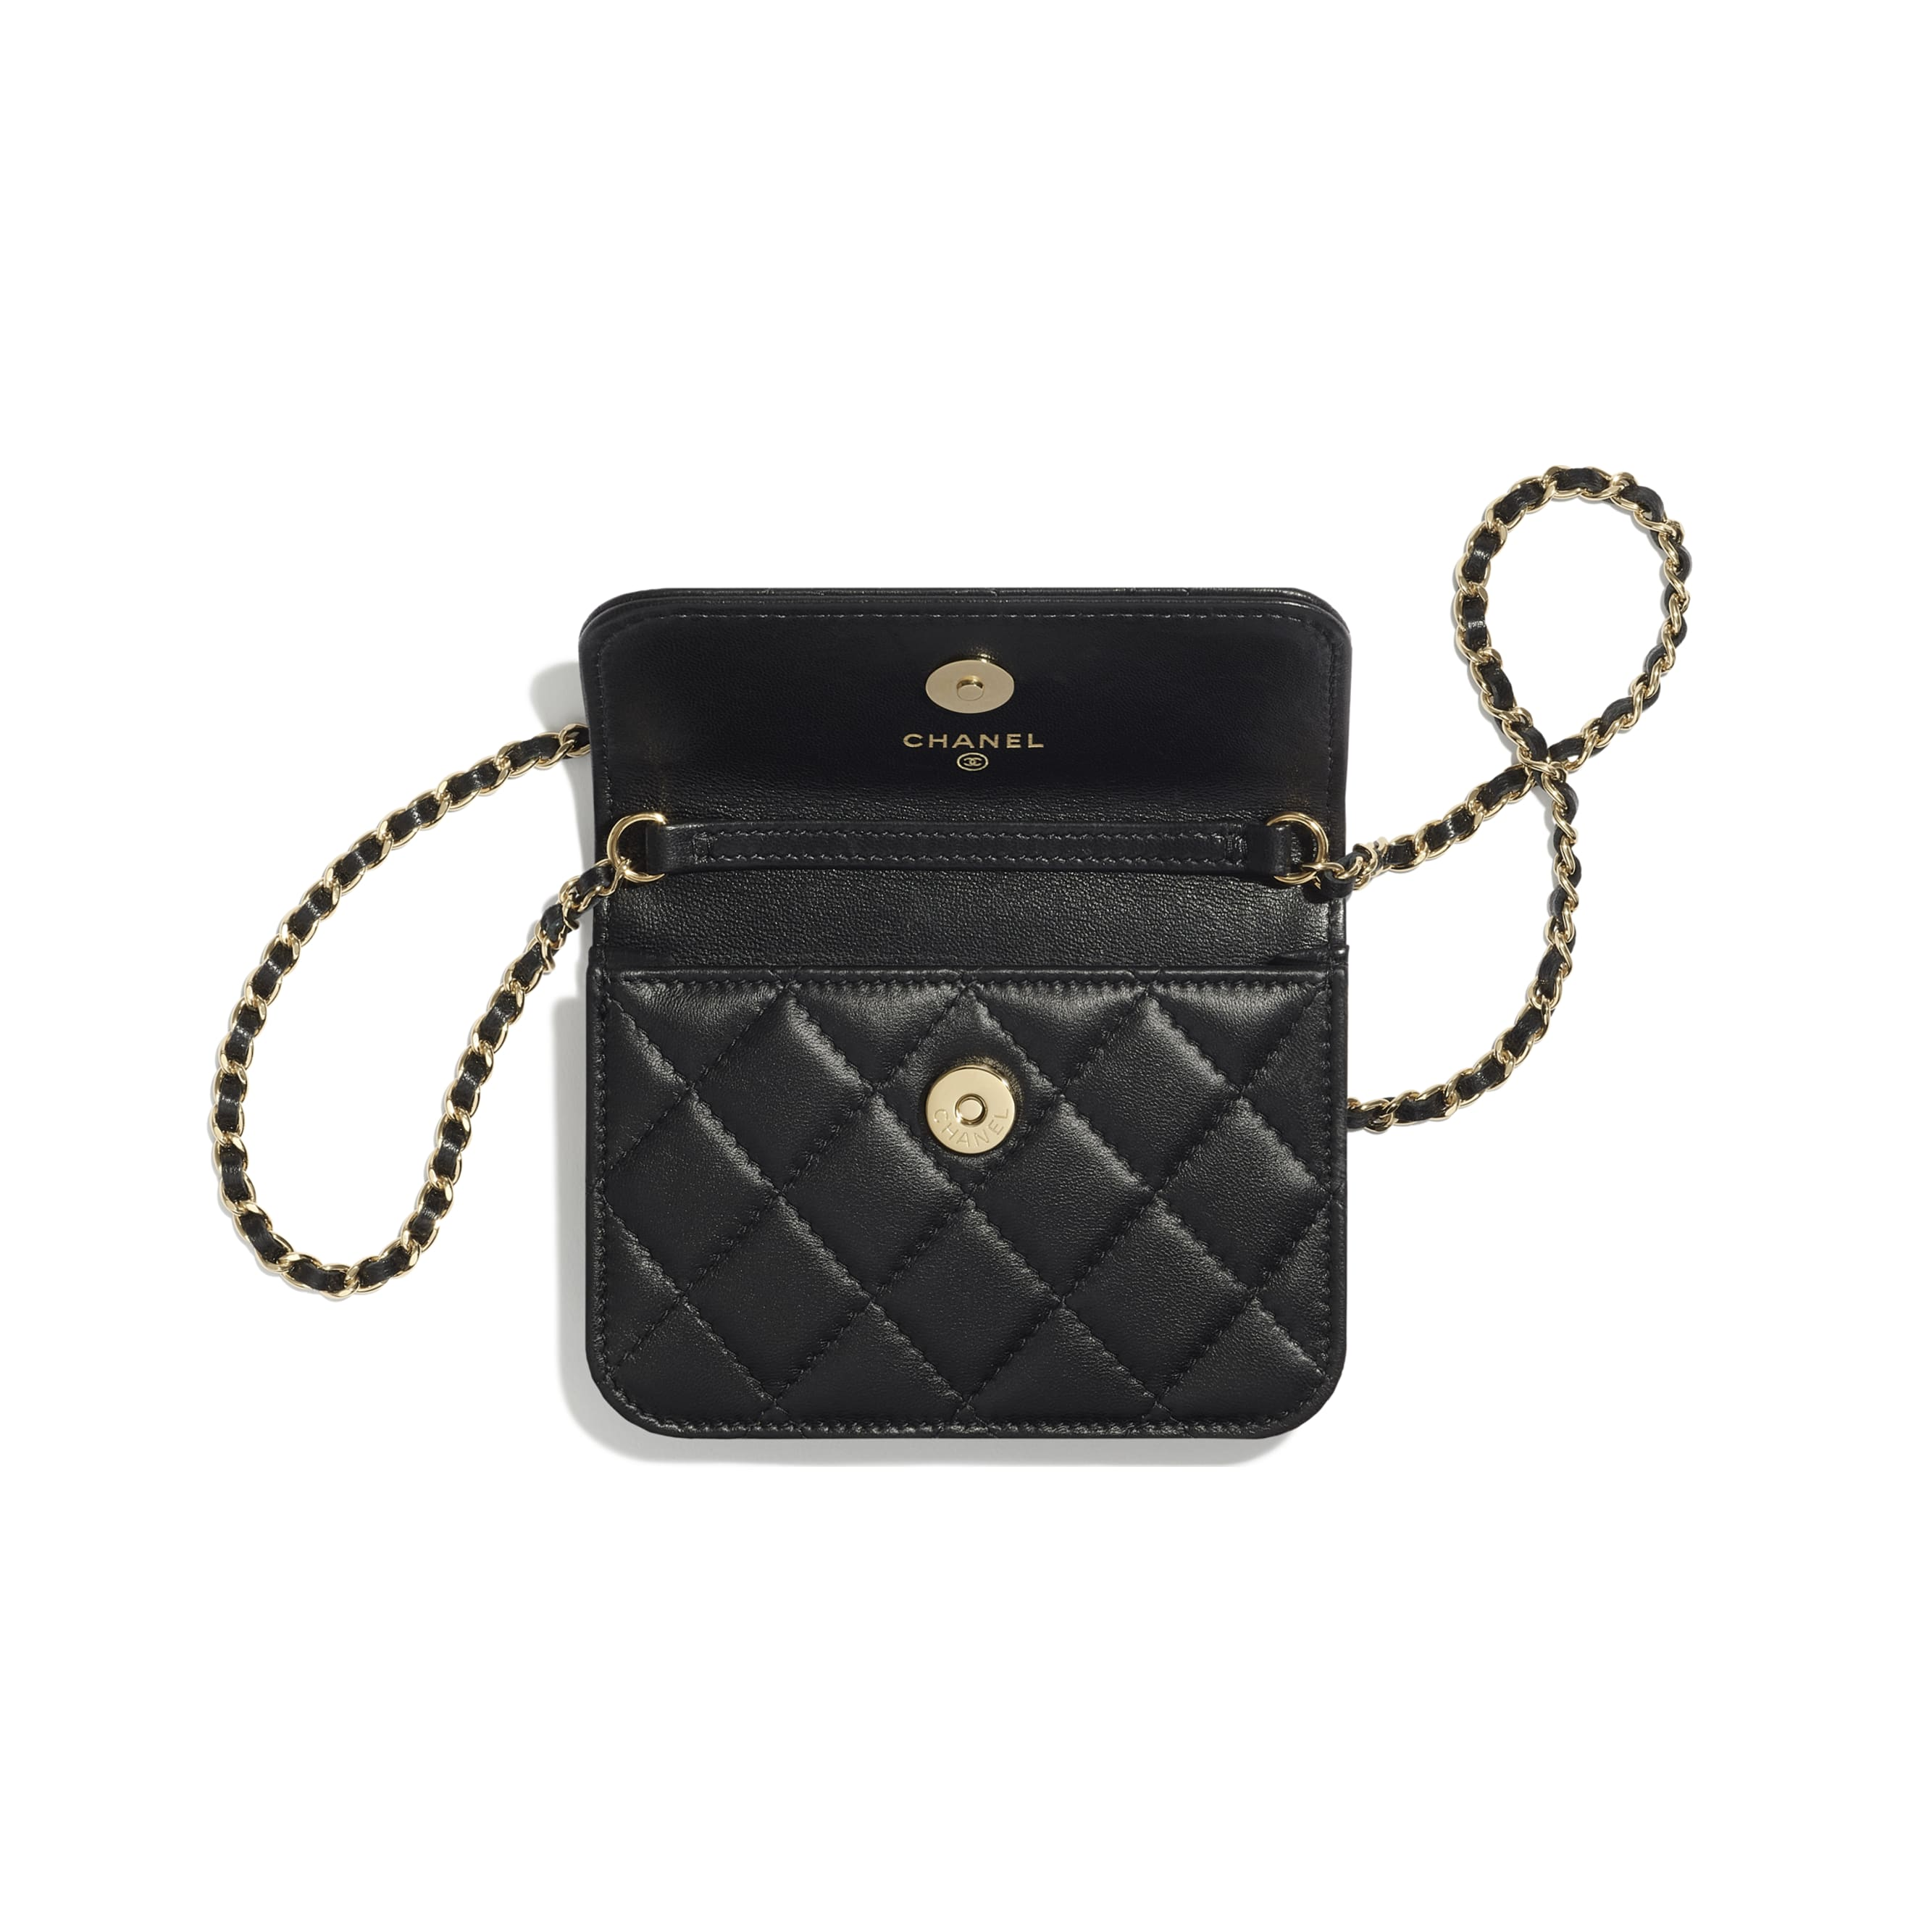 Clutch With Chain - Black - Lambskin, Zirconium & Gold-Tone Metal - CHANEL - Alternative view - see standard sized version